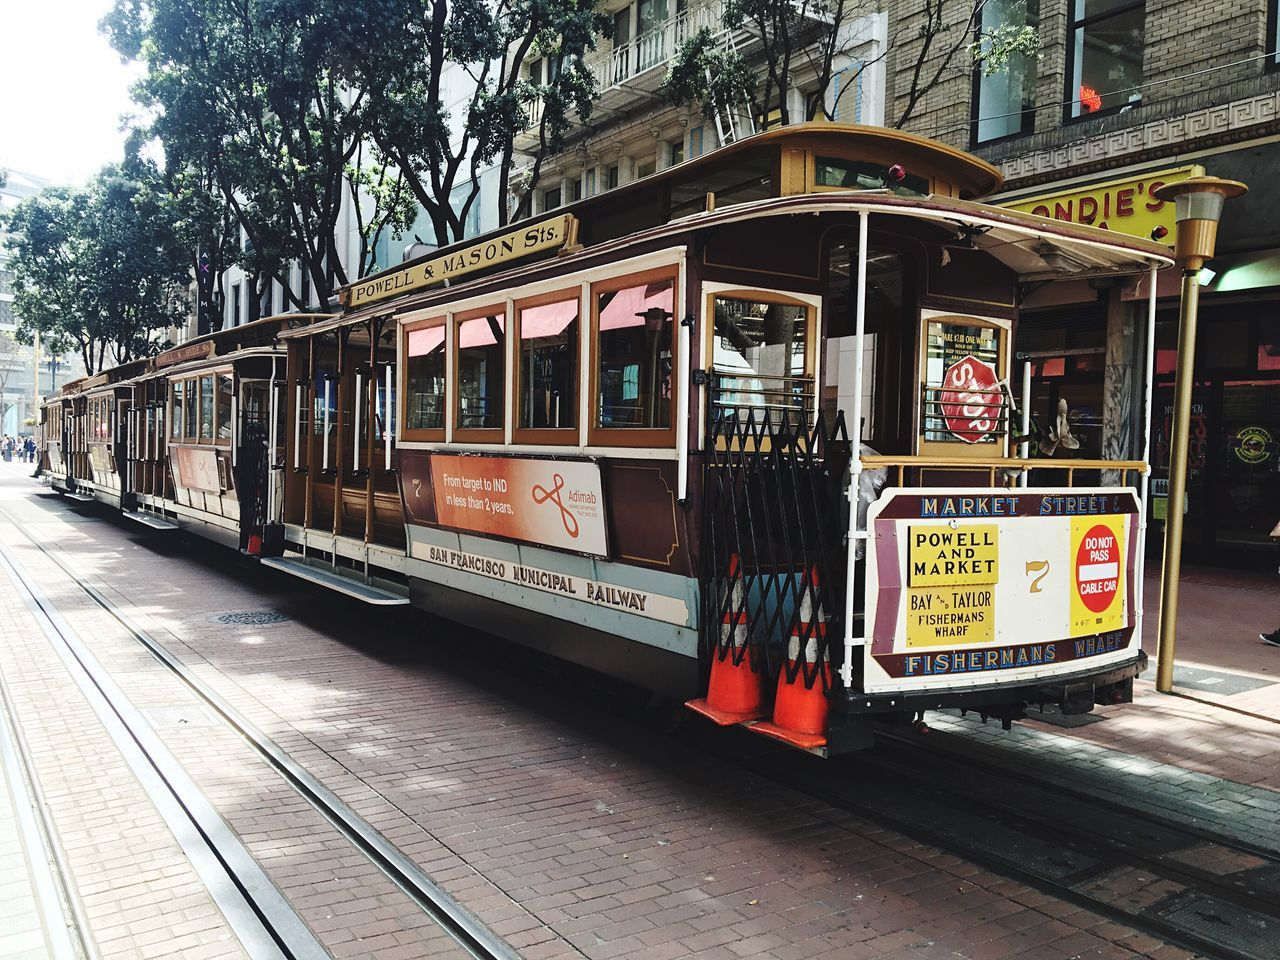 Iphonephotography IPhone Photography IPhoneography Transportation Tree Train - Vehicle Public Transportation City Outdoors Land Vehicle Day No People